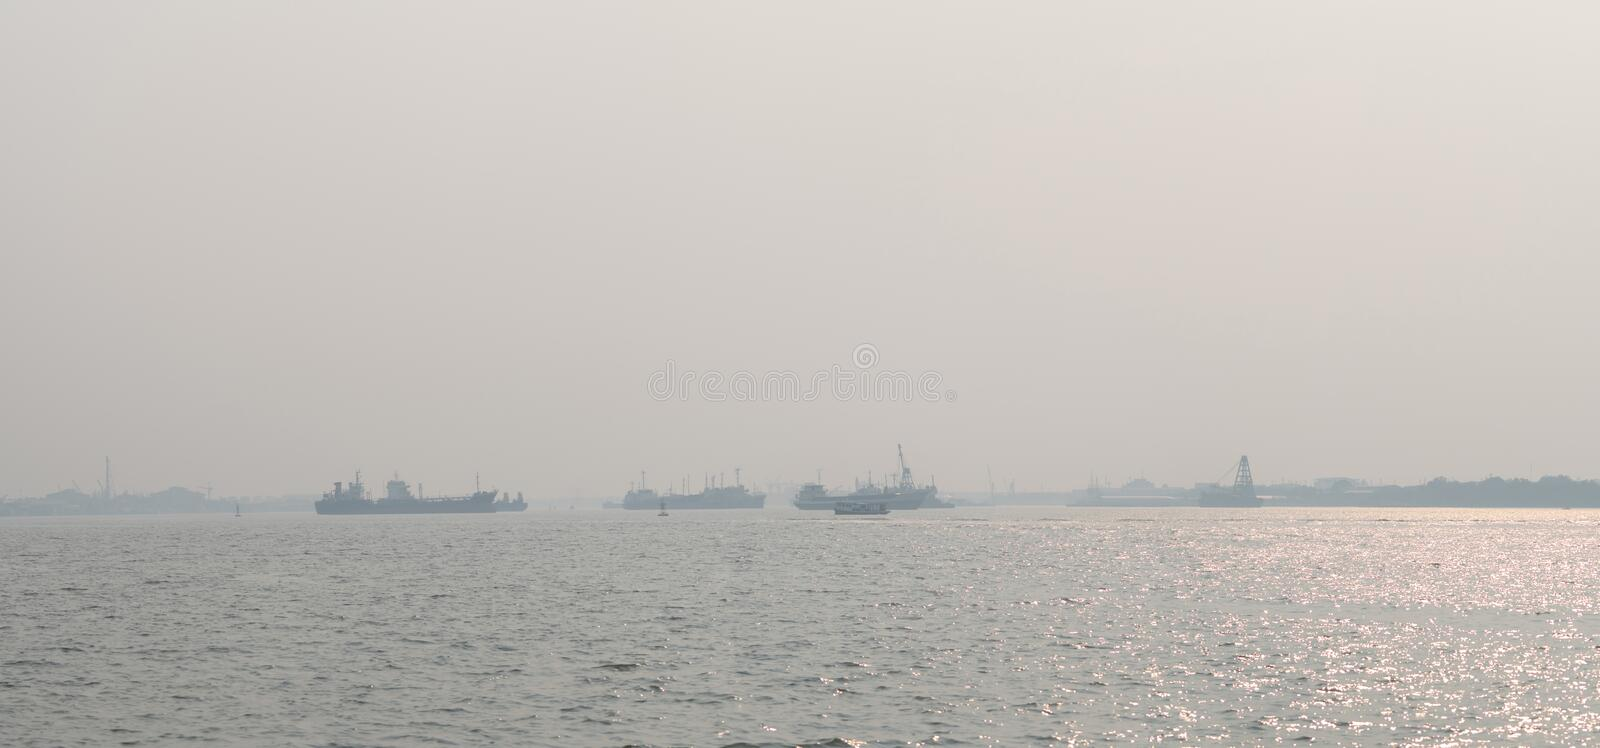 Air pollution at the pier. Bad air quality filled with dust causes of respiratory diseases. Global warming from air pollution. Problem. Environmental problem stock photo